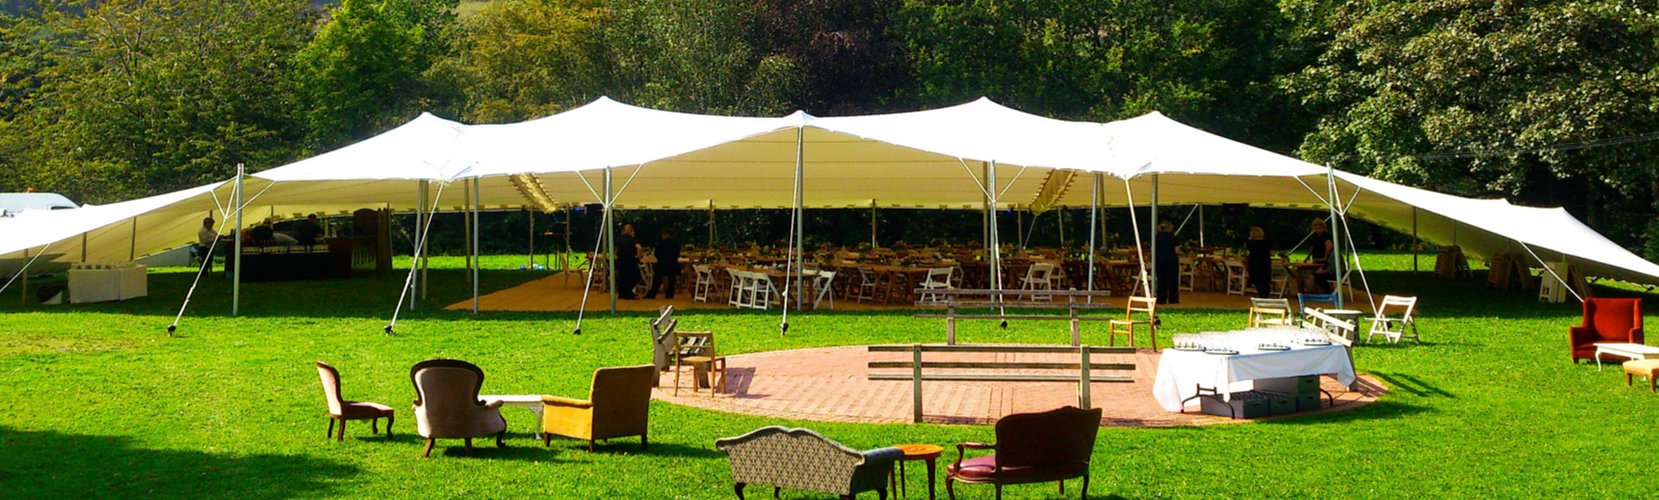 Royal Stretch Tents Africa & Tents for Sale Royal Tent | Best Tent Manufacturer Of Tents South ...